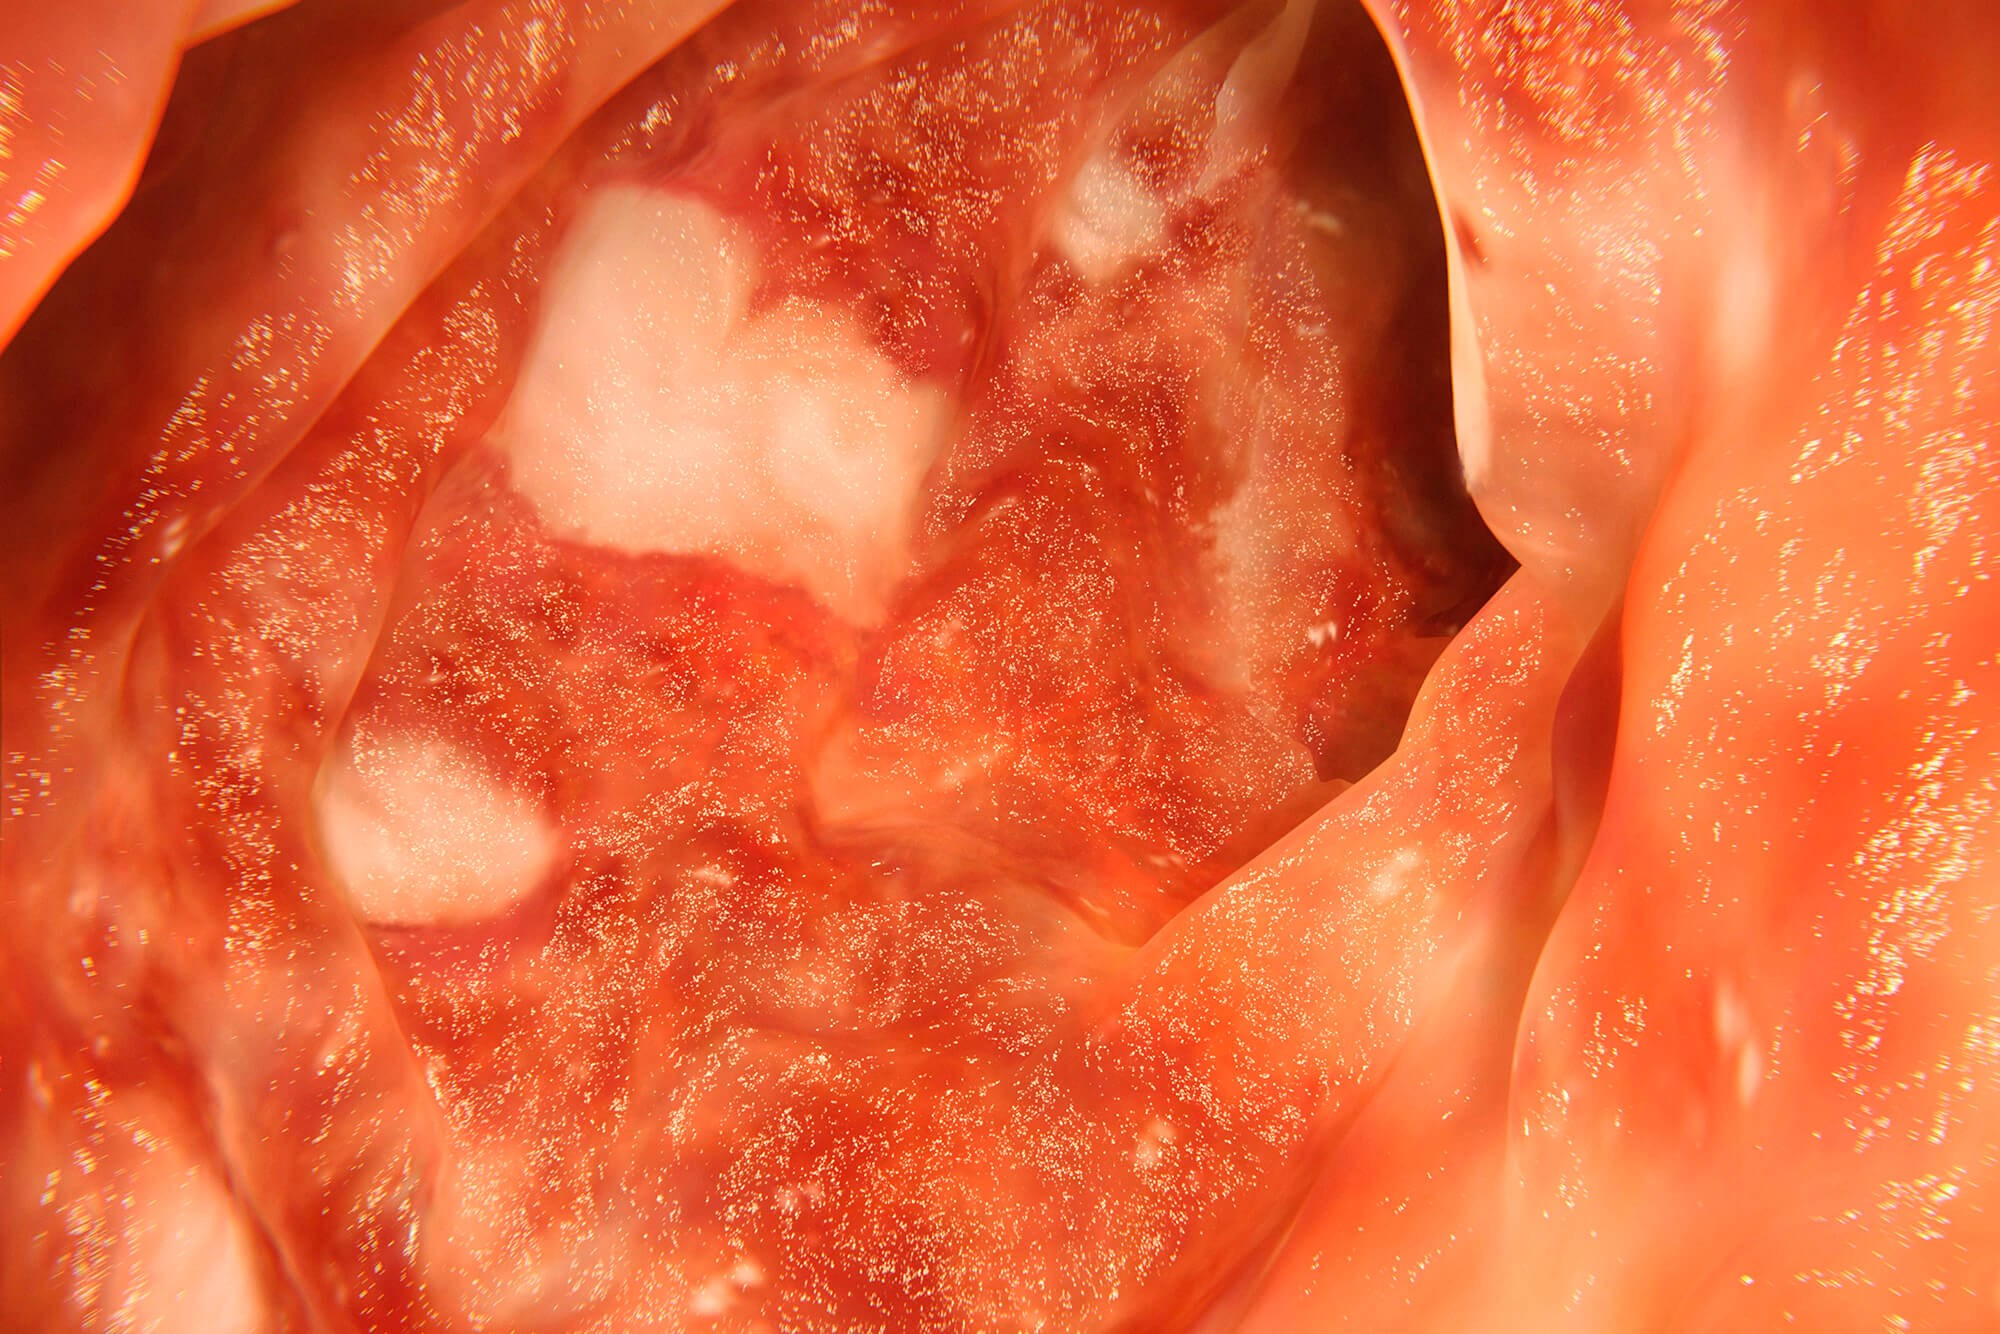 Potential of Fecal Microbiota Transplantation in Managing Immunotherapy-Associated Colitis